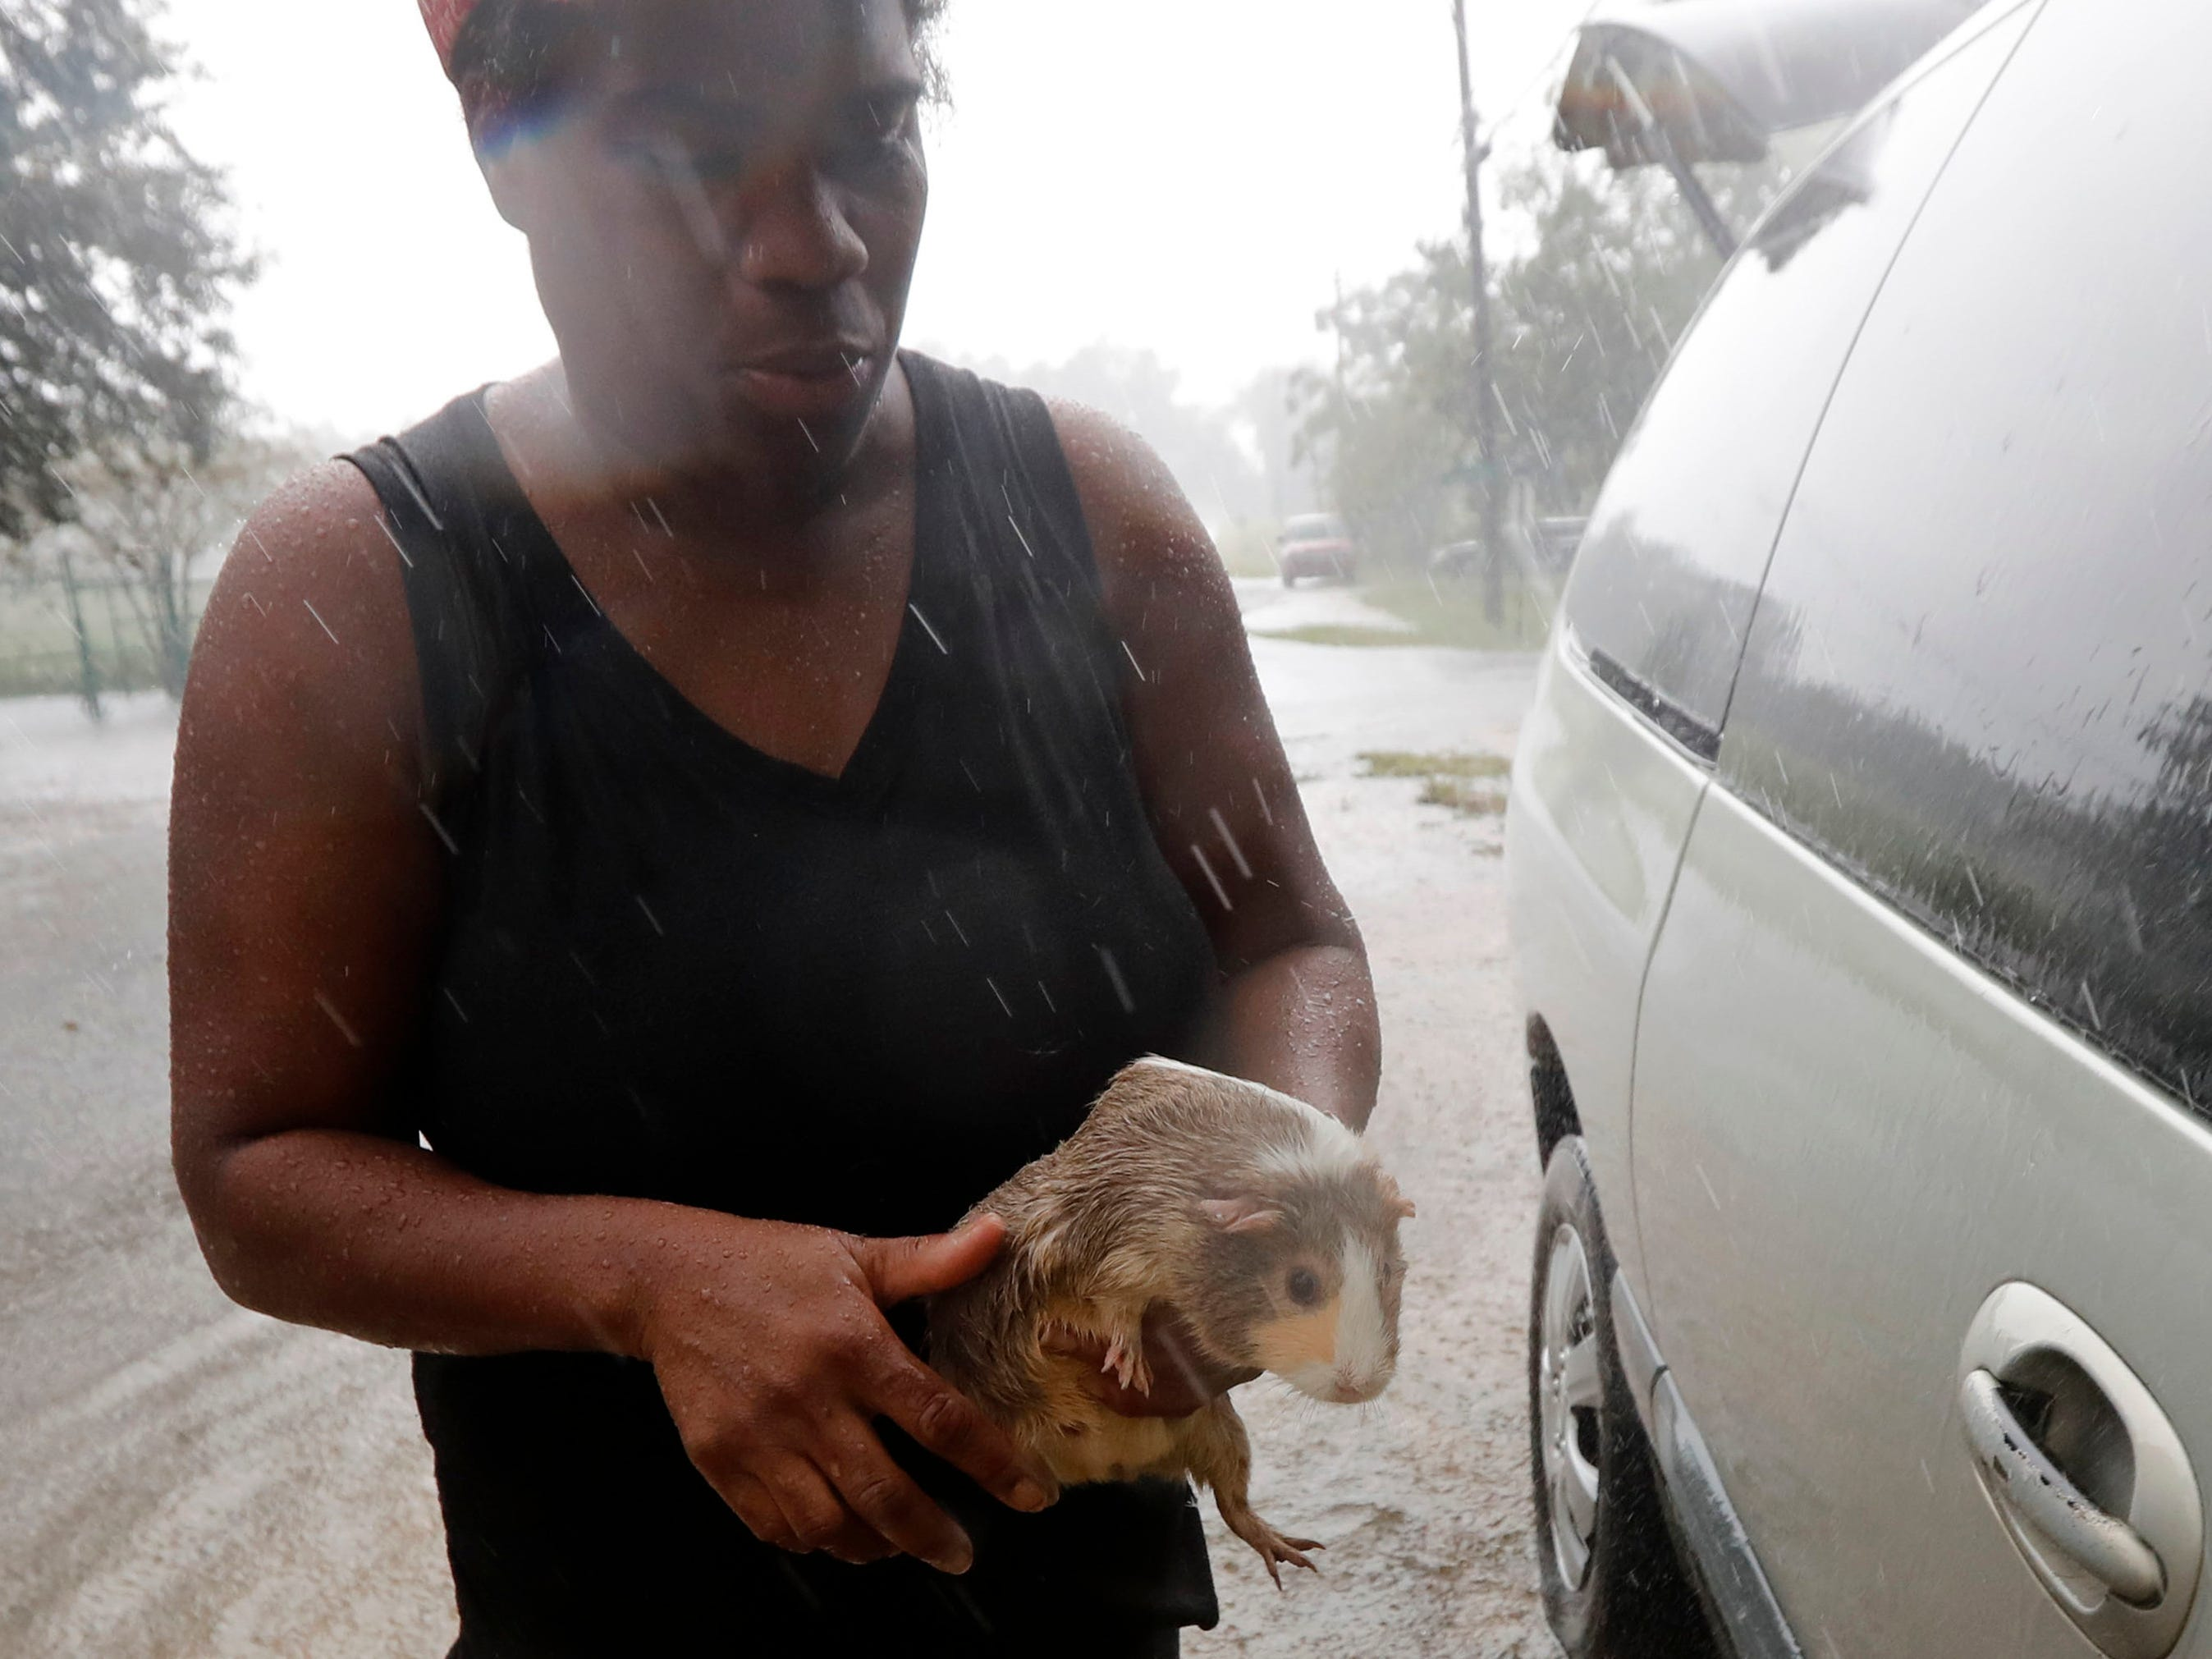 Ivory Frazier retrieves her pet guinea pig, as she evacuates her home due to rising floodwaters from Hurricane Florence in Latta, S.C.Sept. 16, 2018.